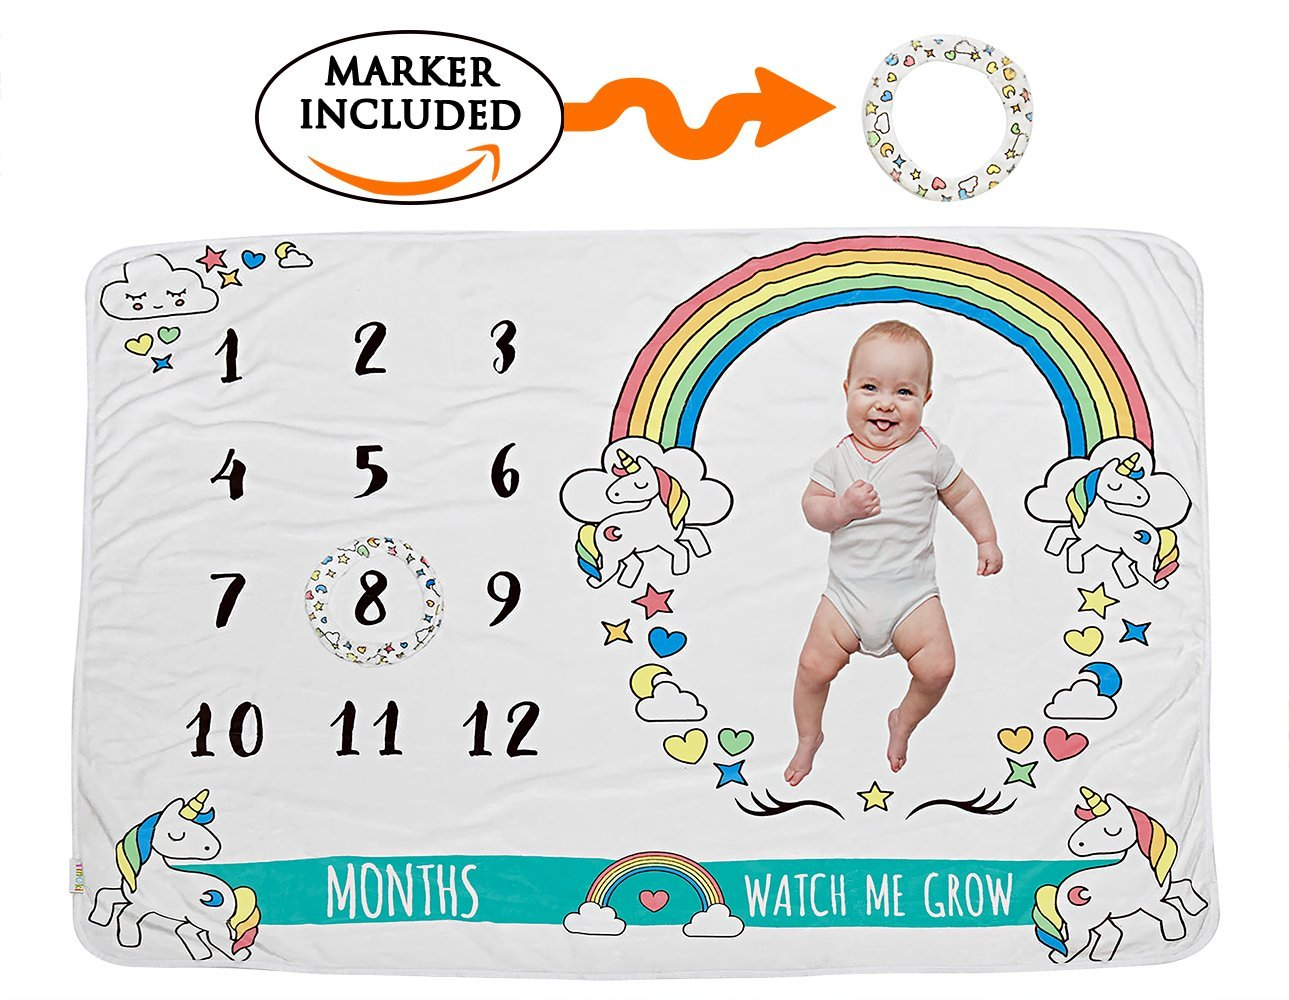 Tinoki Baby Milestone Blanket for Newborn Boys, Girls Photography – Monthly Rainbow Unisex Soft Unicorn Growth Keepsake Blankie Backdrop Photo Banner Frame Prop Shower Gift with Month Numbers,Marker